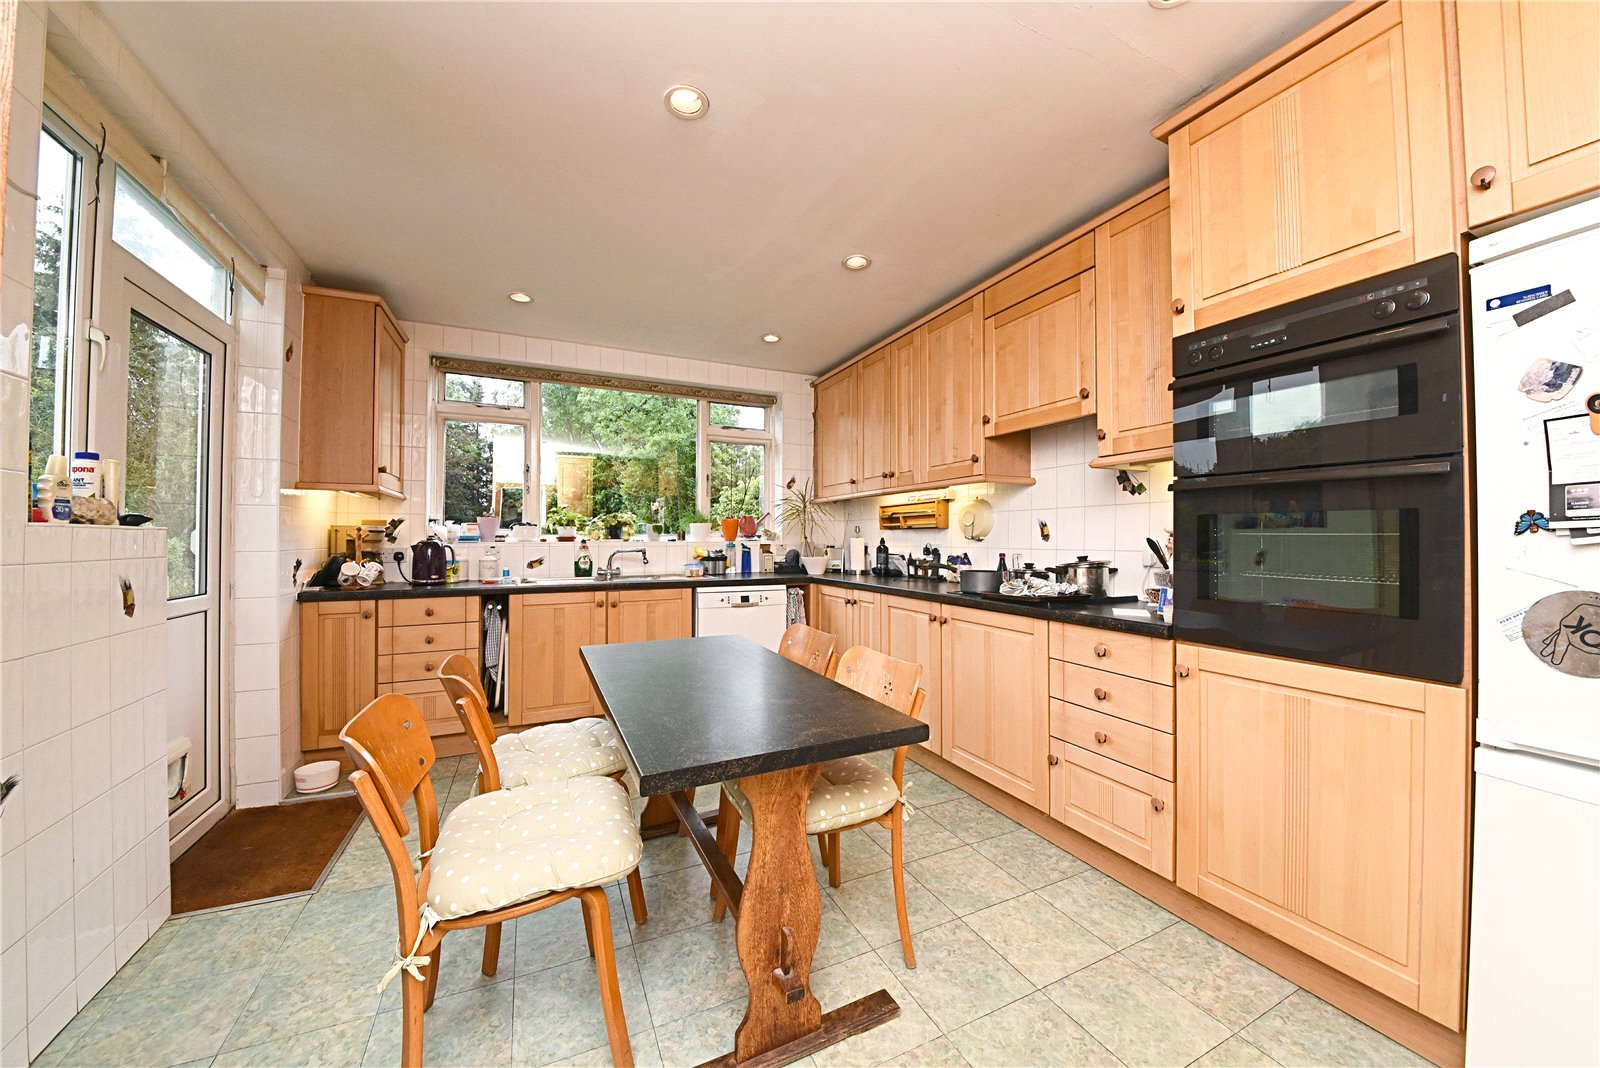 4 bed house for sale in Whetstone, N20 9ED 0